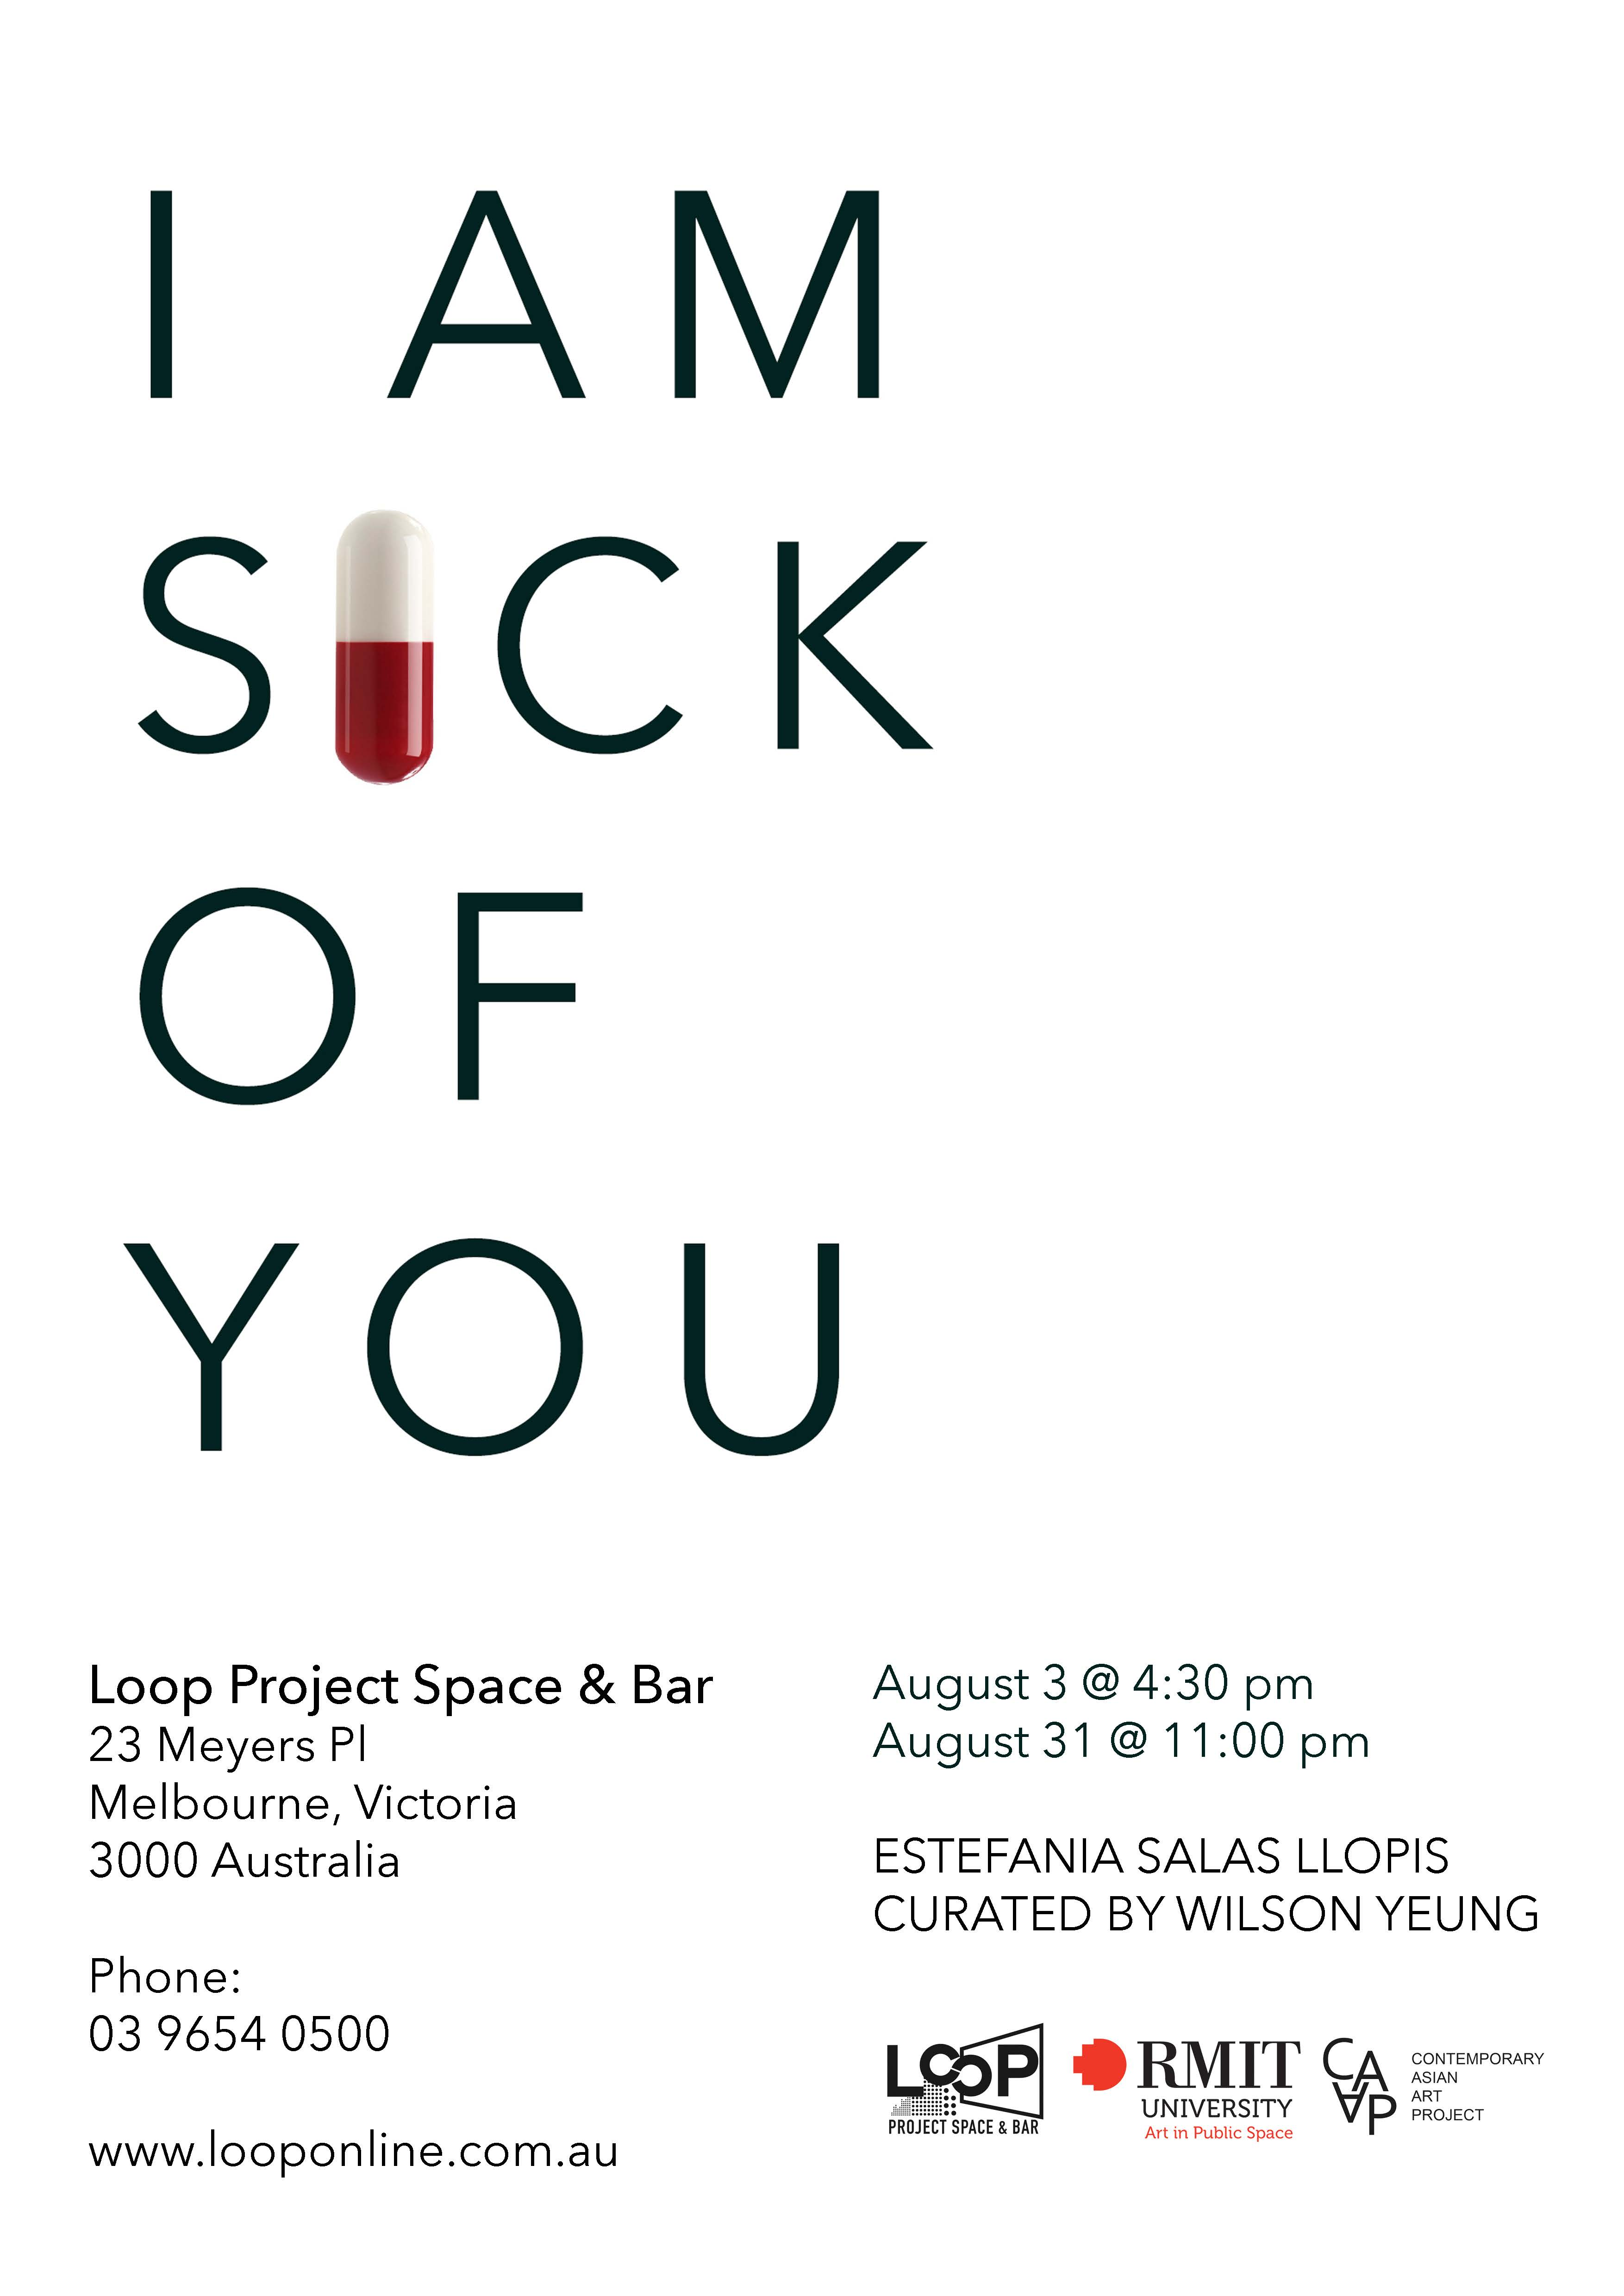 Loophole i am sick of you loop project space bar loophole i am sick of you altavistaventures Gallery